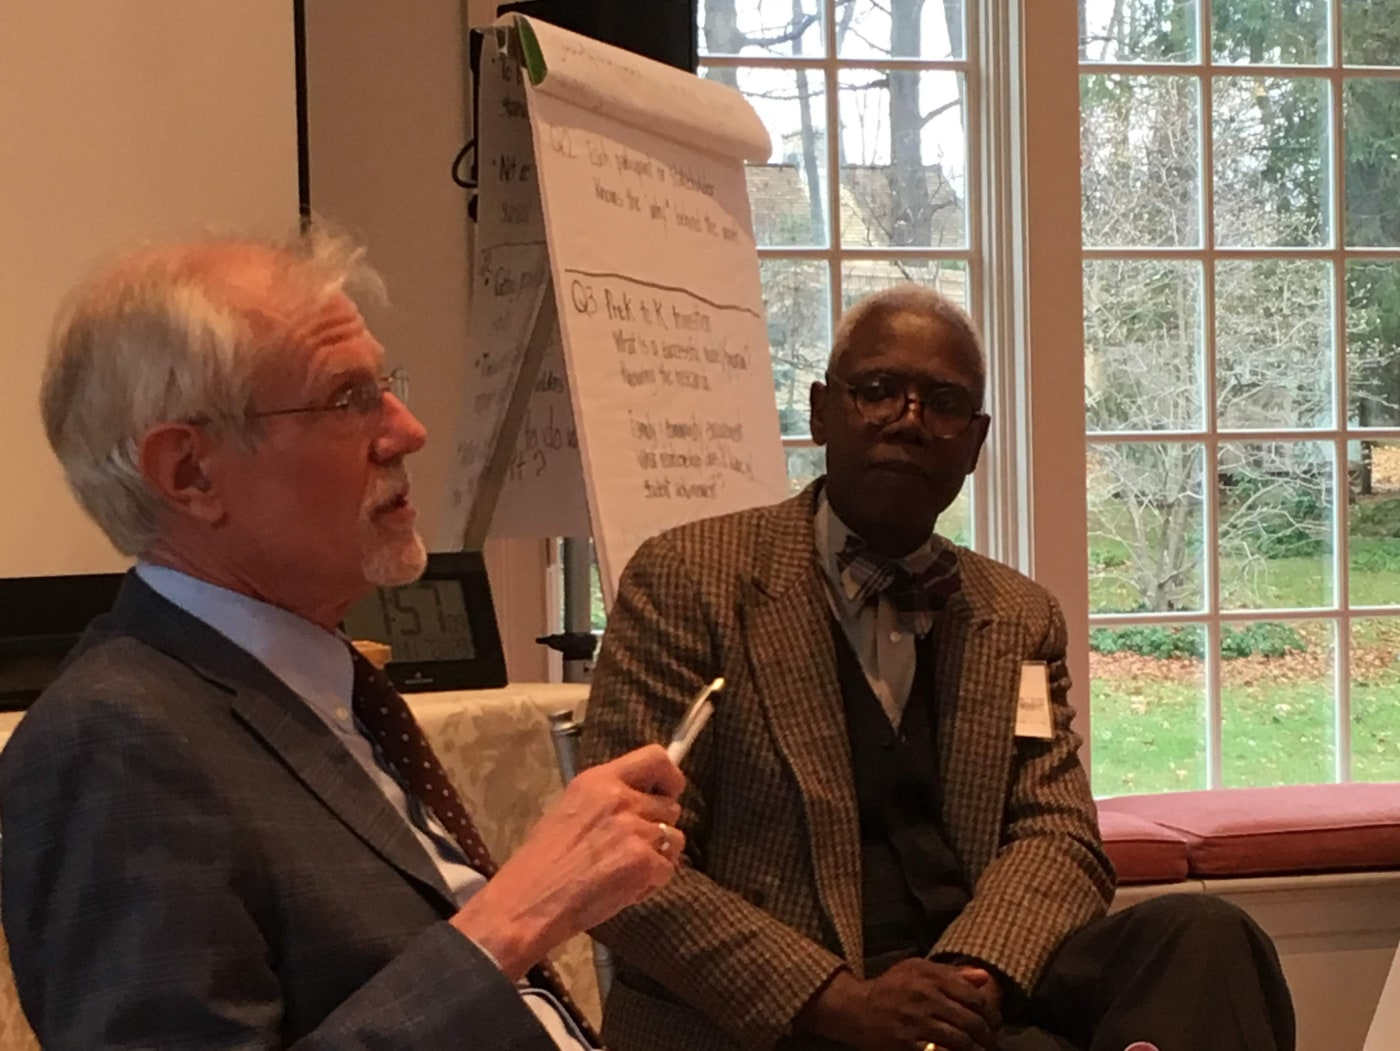 Fireside chat with John Easton and George Coleman